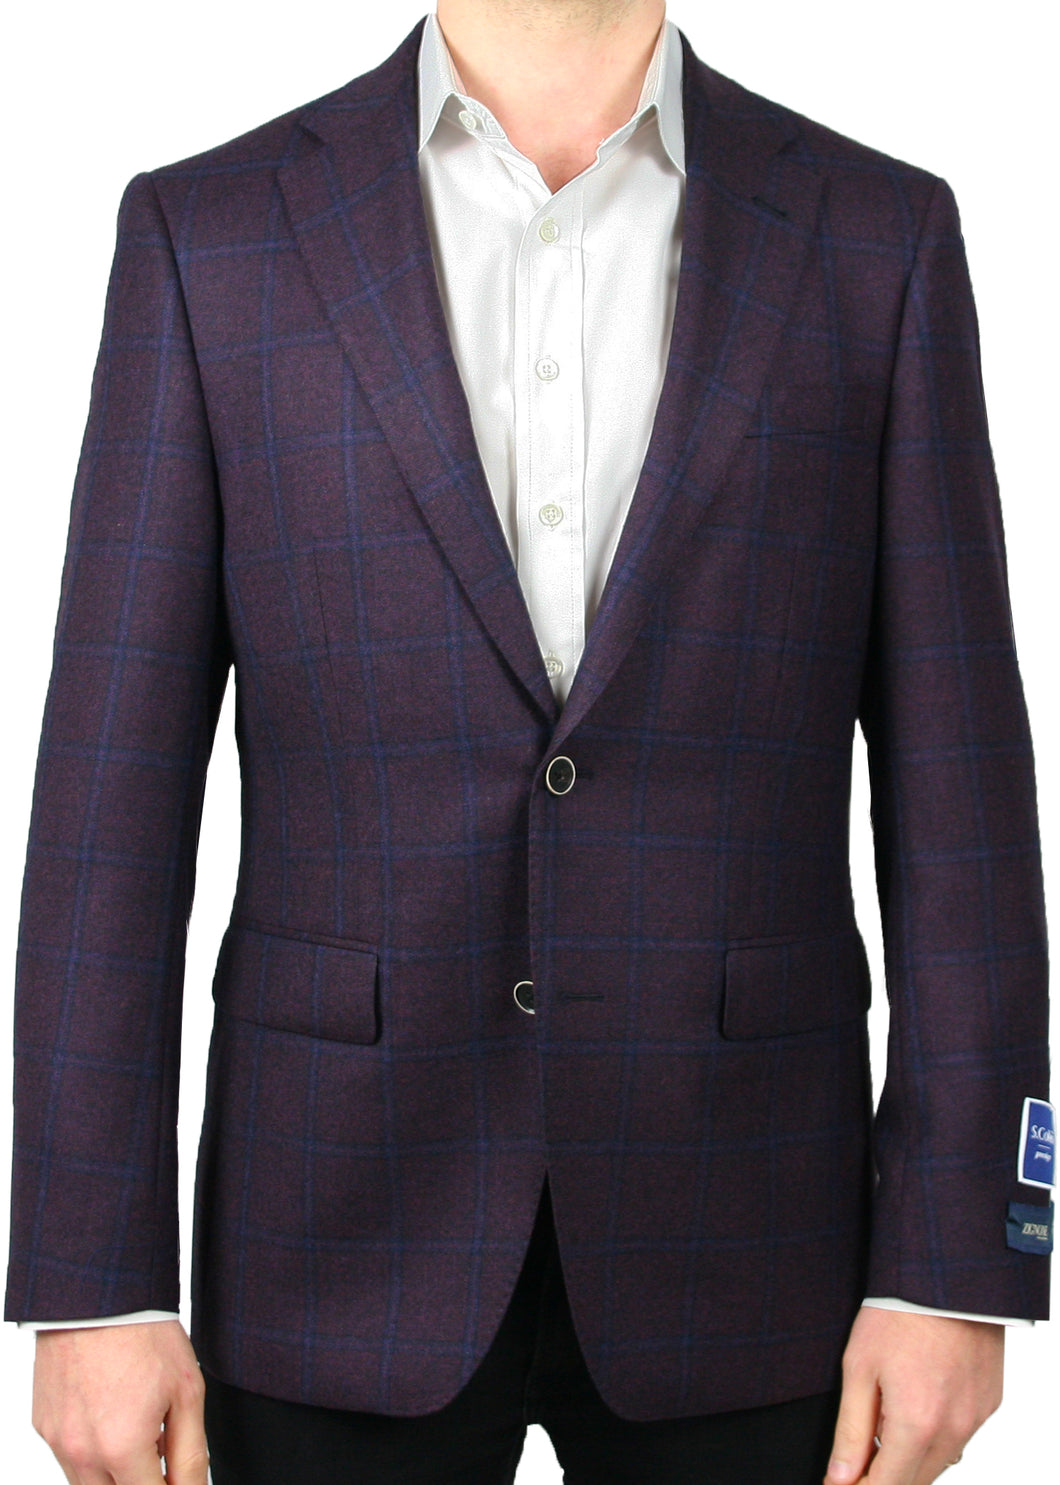 Zignone Burgundy and Blue Windowpane Jacket